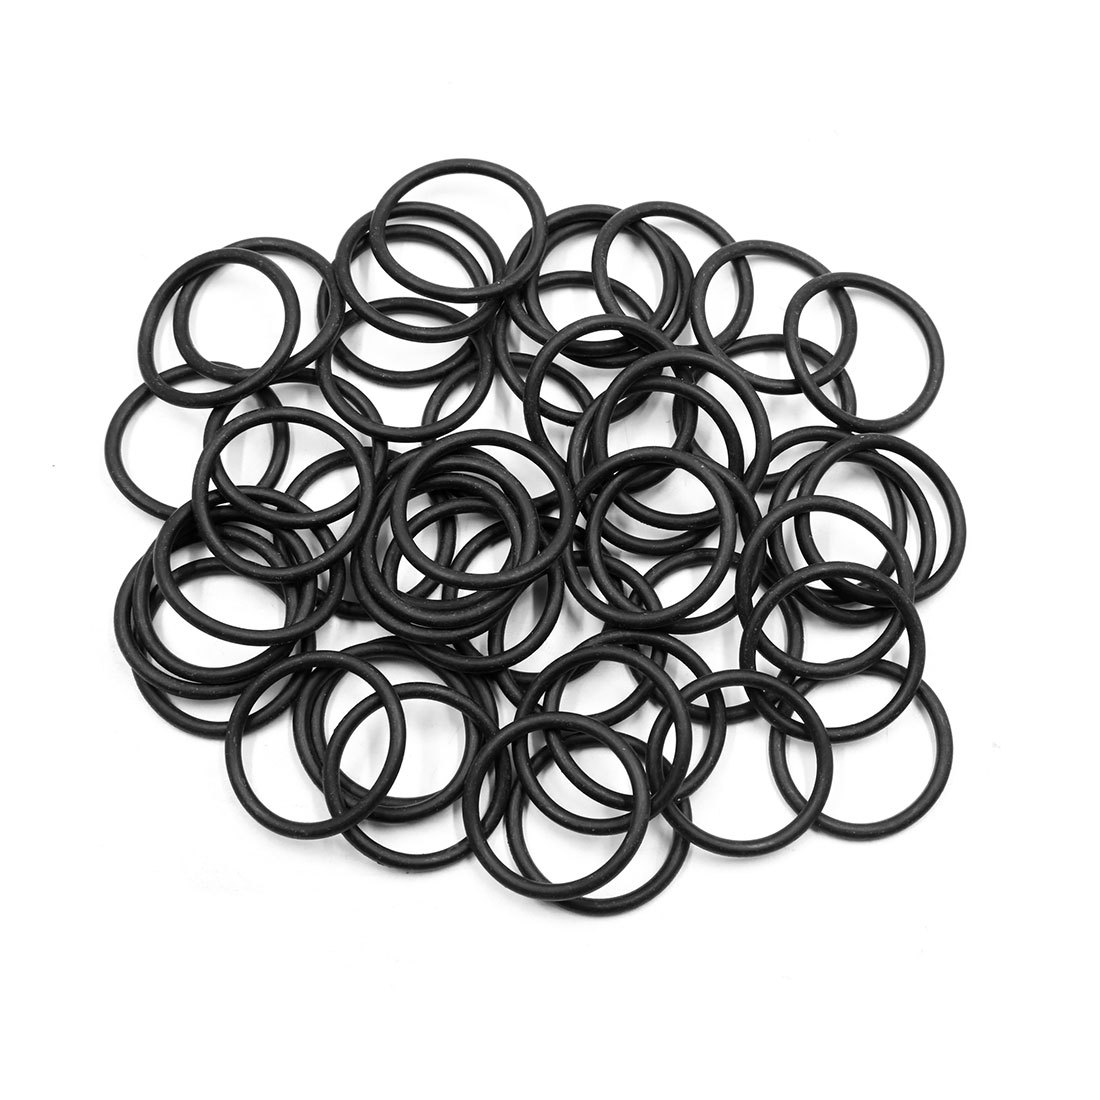 50pcs Black Universal Nitrile Rubber O-Ring Seals Gasket for Car 32.5 x 3.55mm